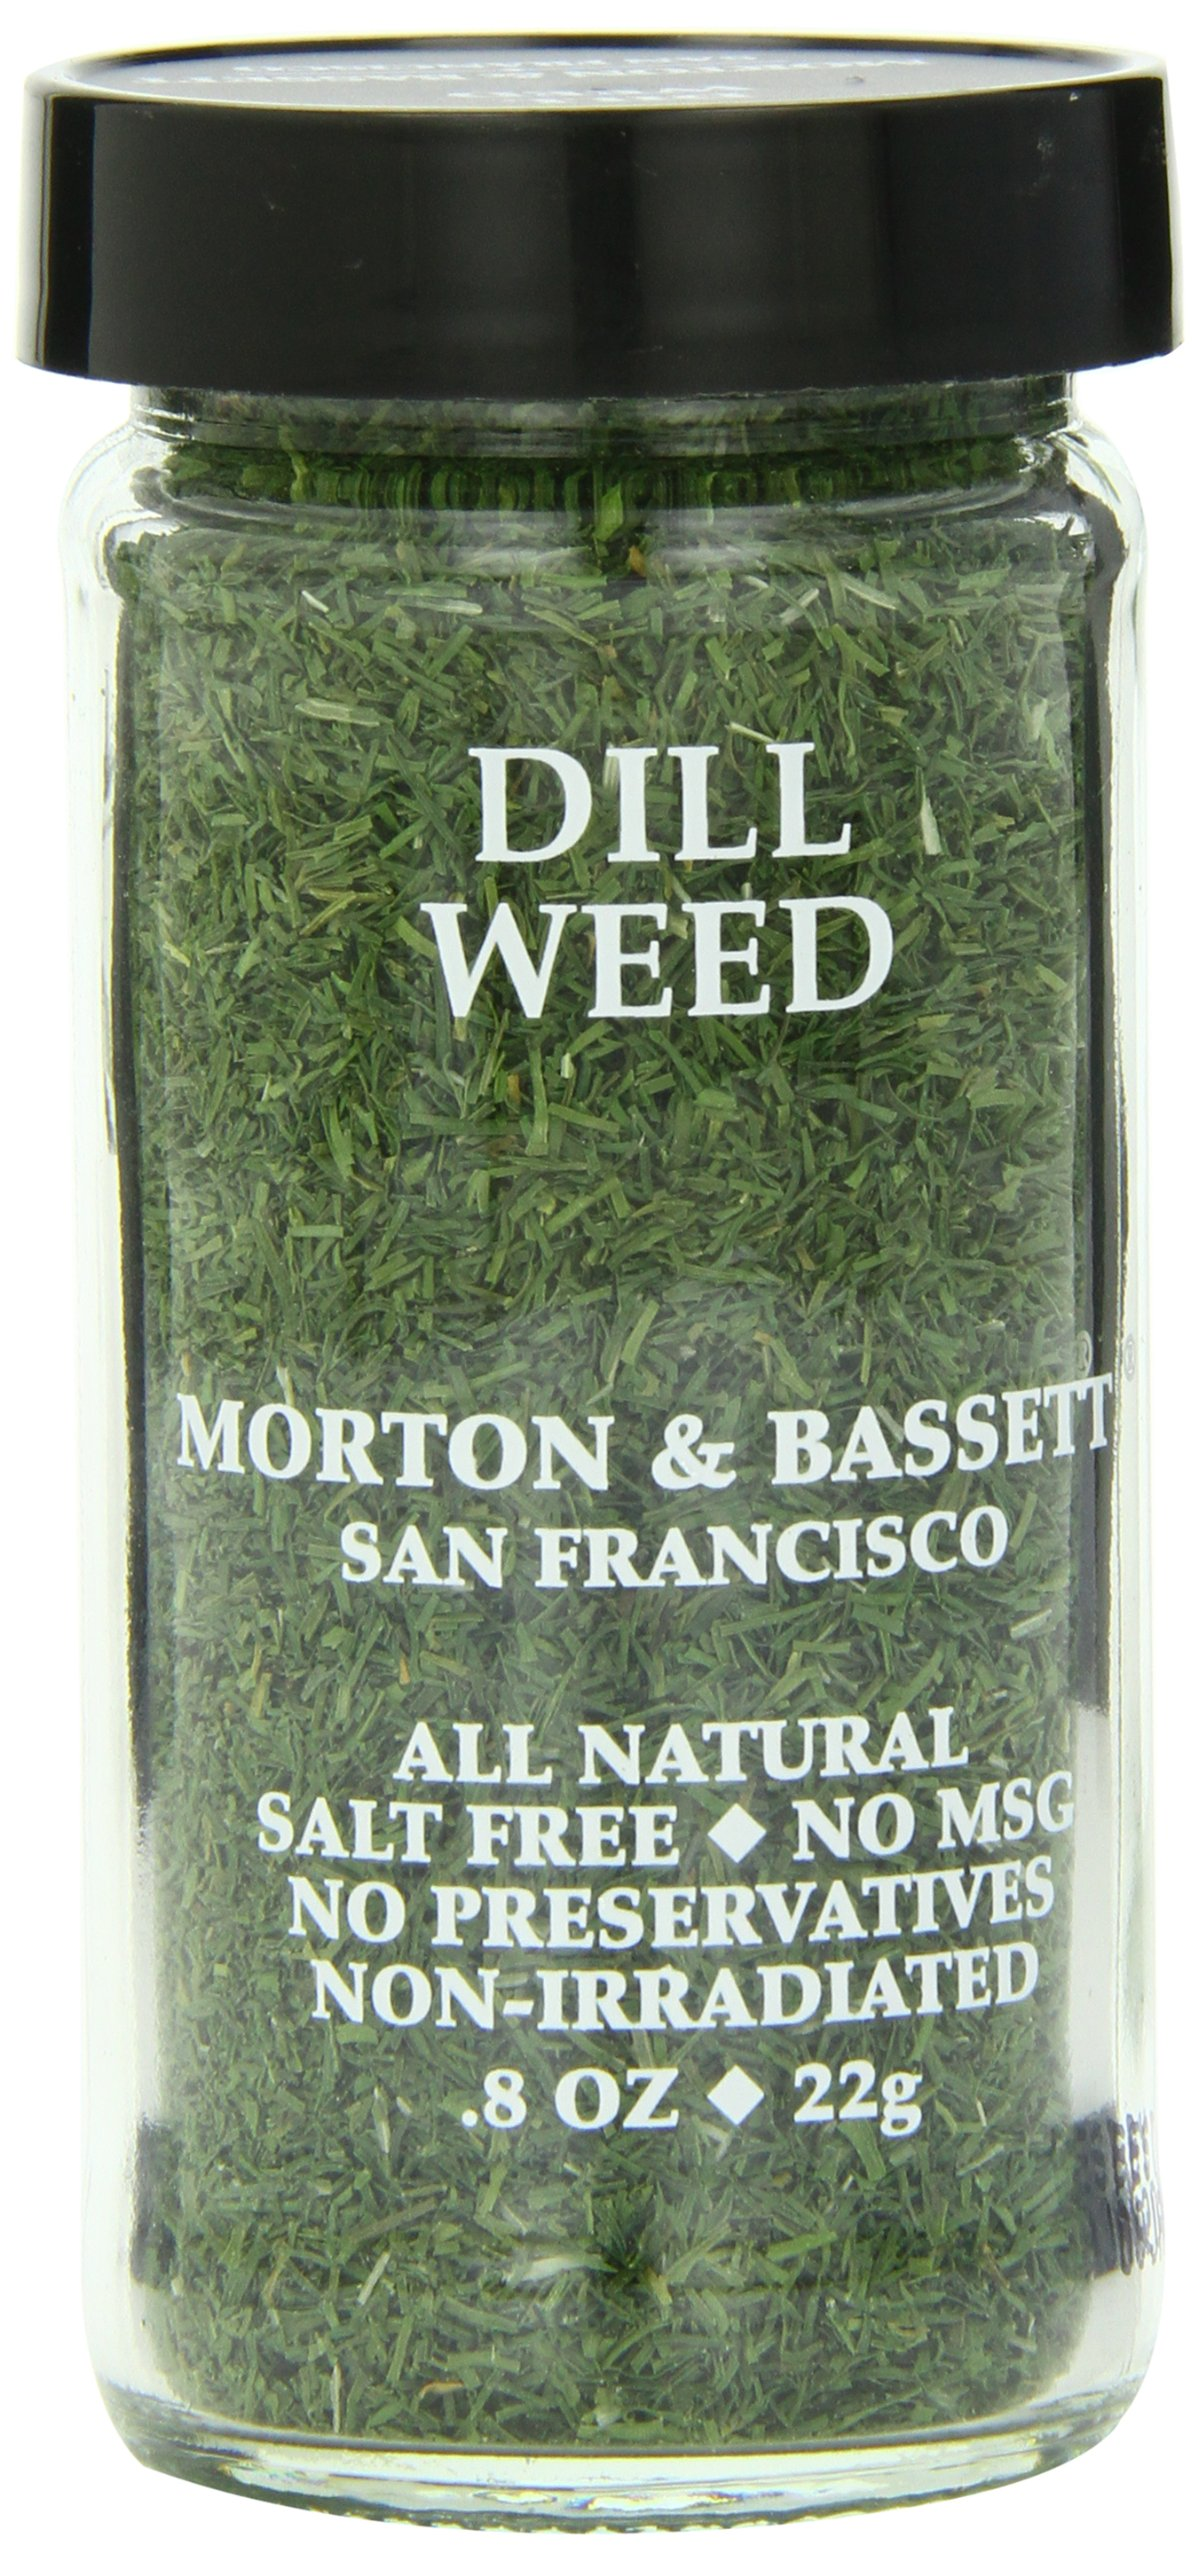 Morton & Basset Spices, Dill Weed, 0.8 Ounce (Pack of 3)